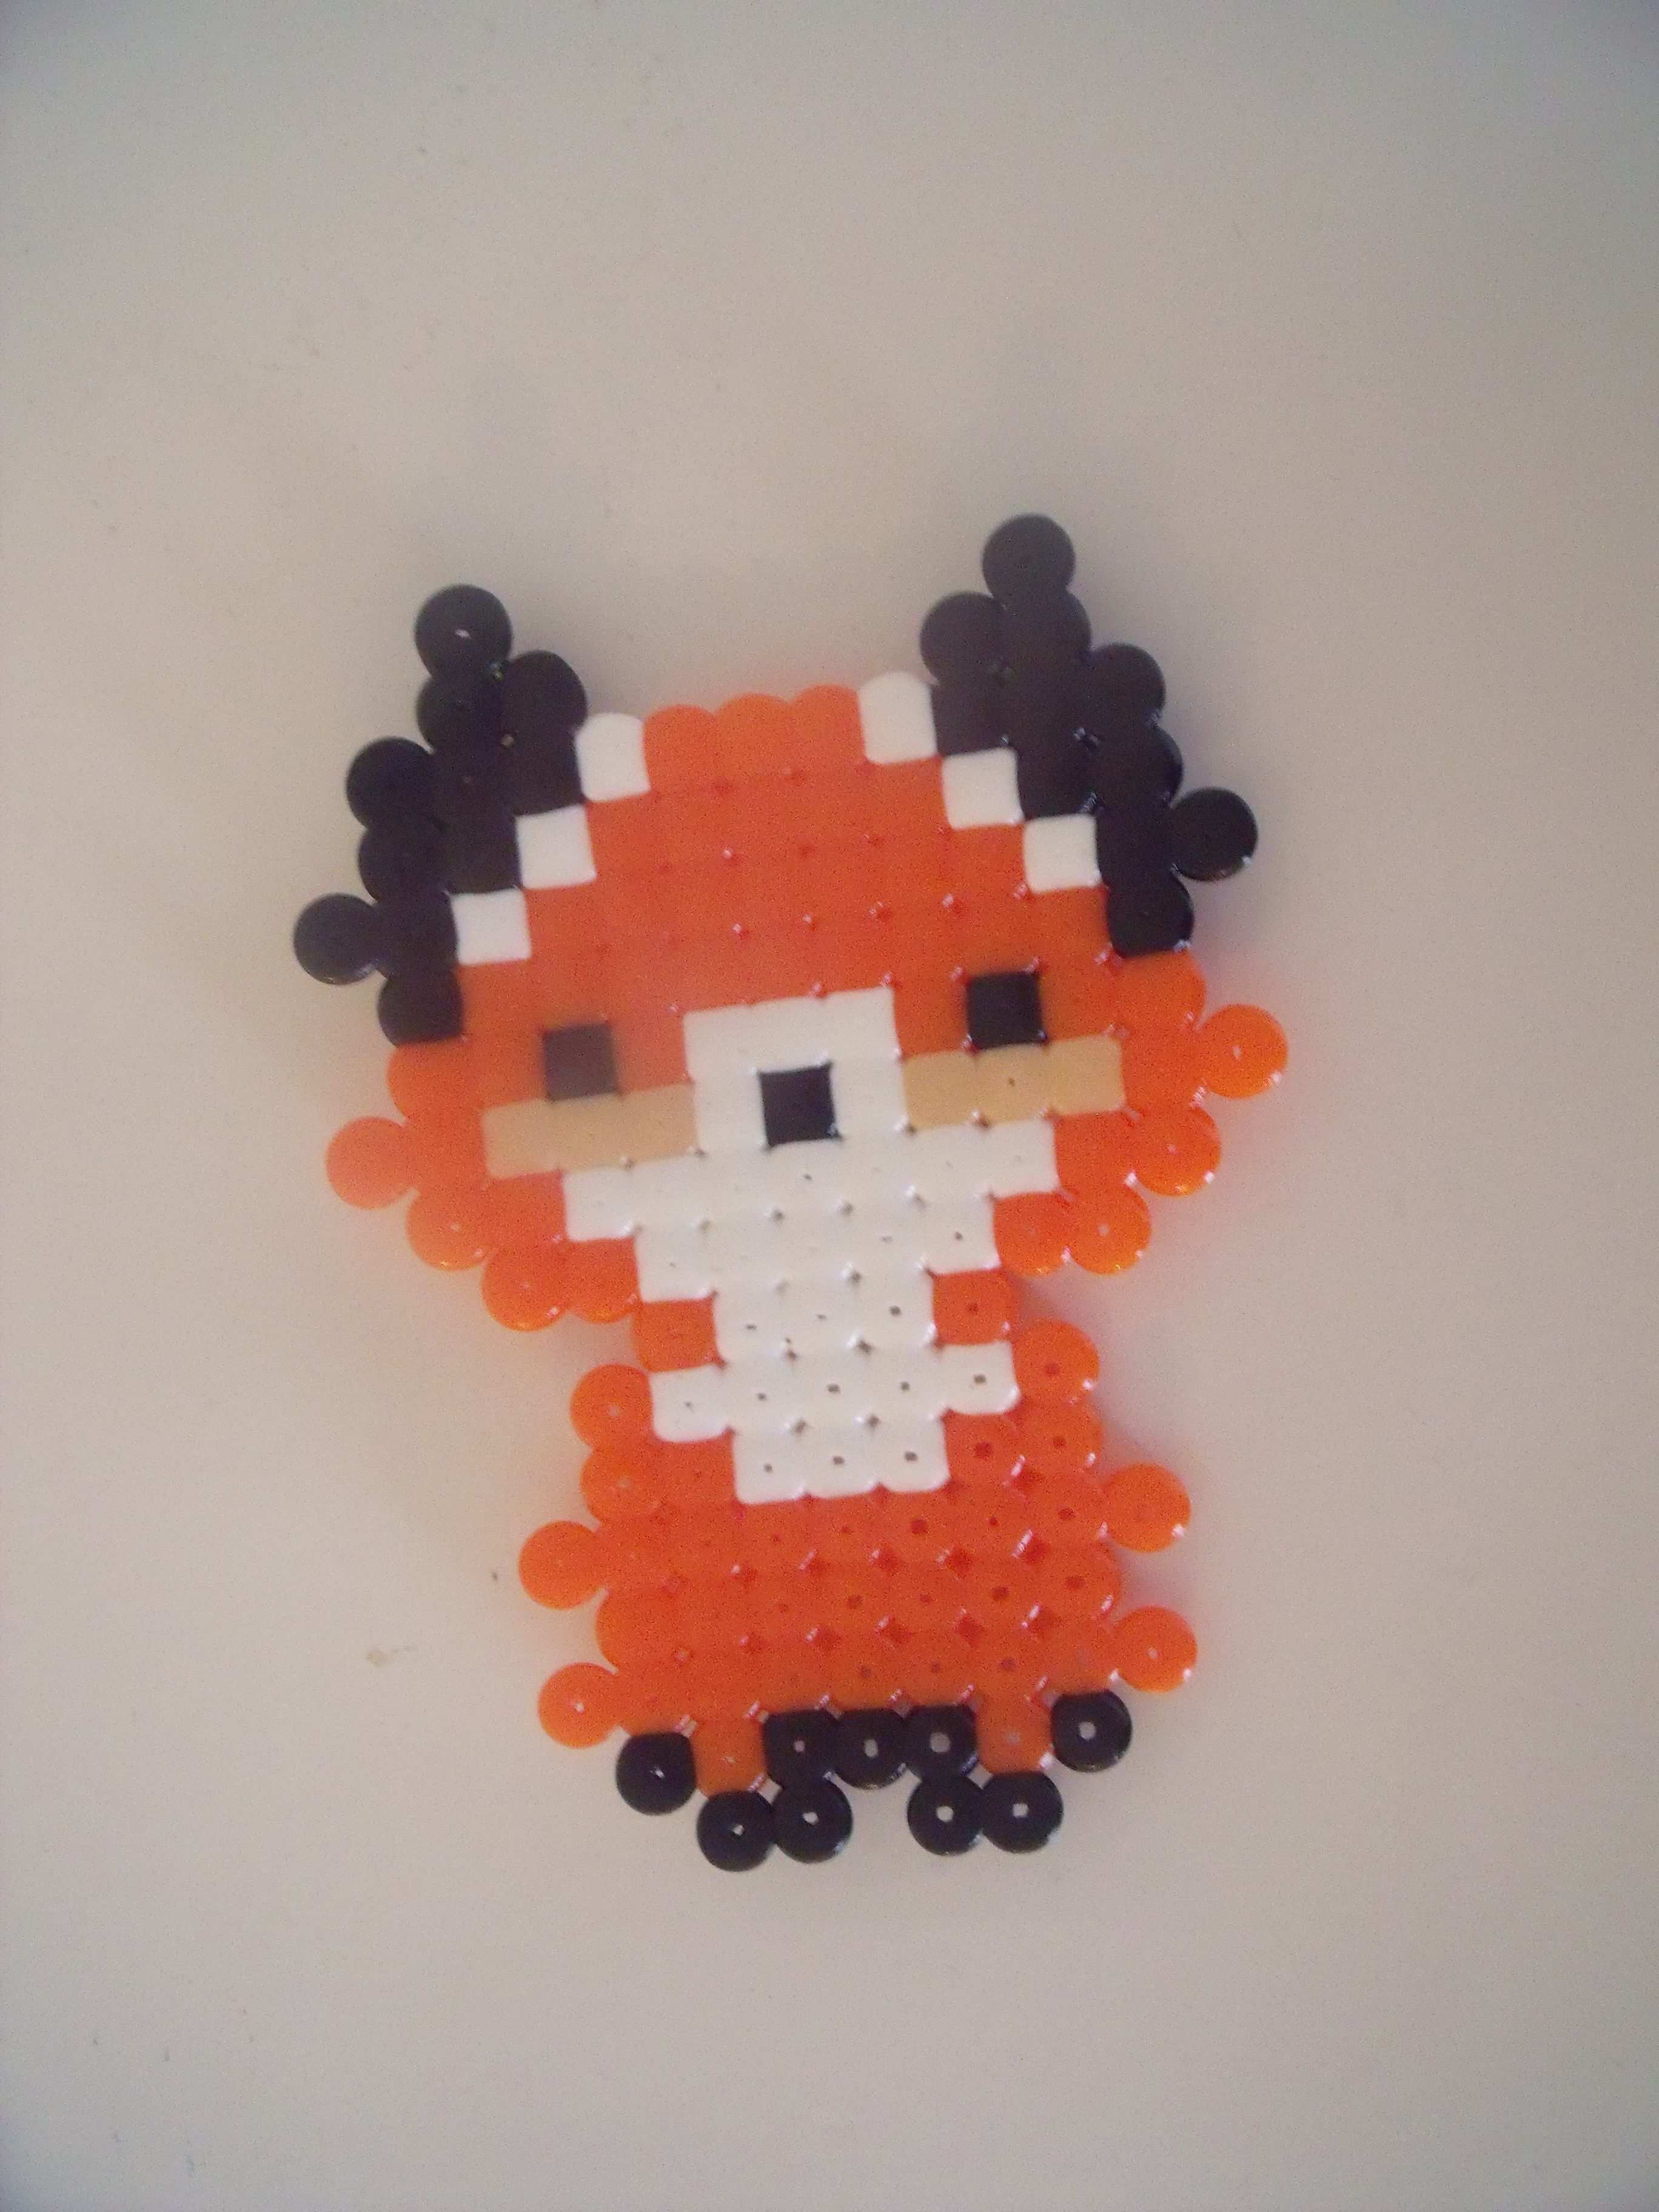 My Mom Has Made A Cute Fox Cutefox My Mom Has Made A Cute Fox Hama Bugelperlen Hama Perlen Muster Bugelperlen